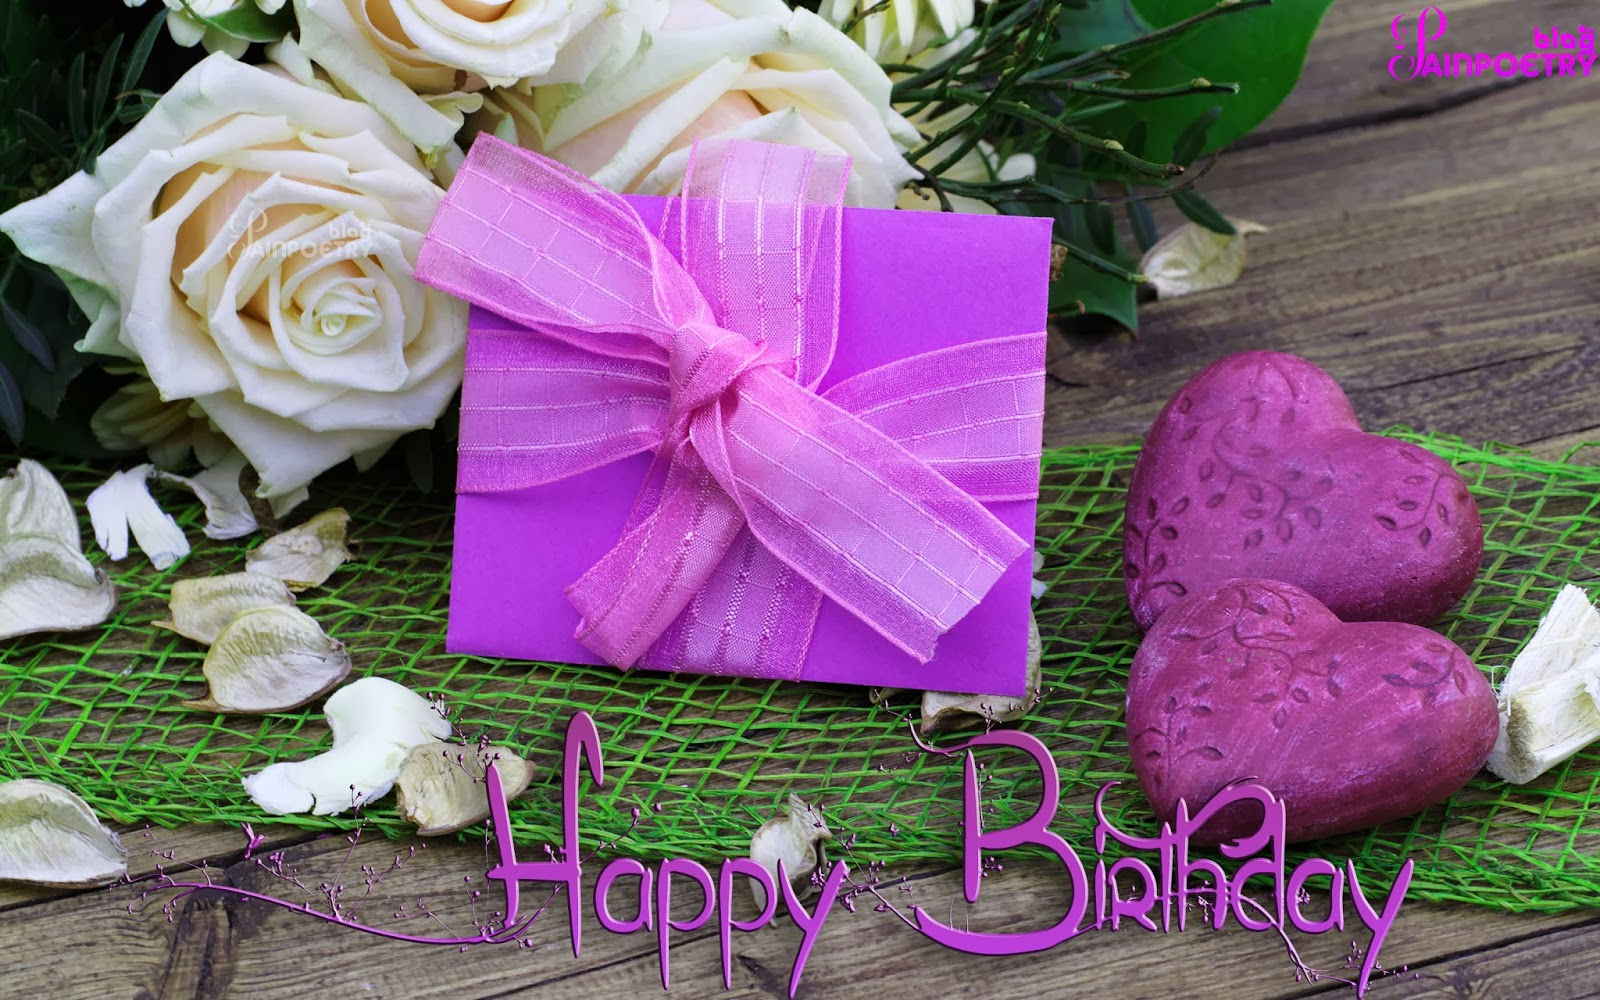 Happy-Birthday-Special-Cake-Image-Wallpaper-Wide